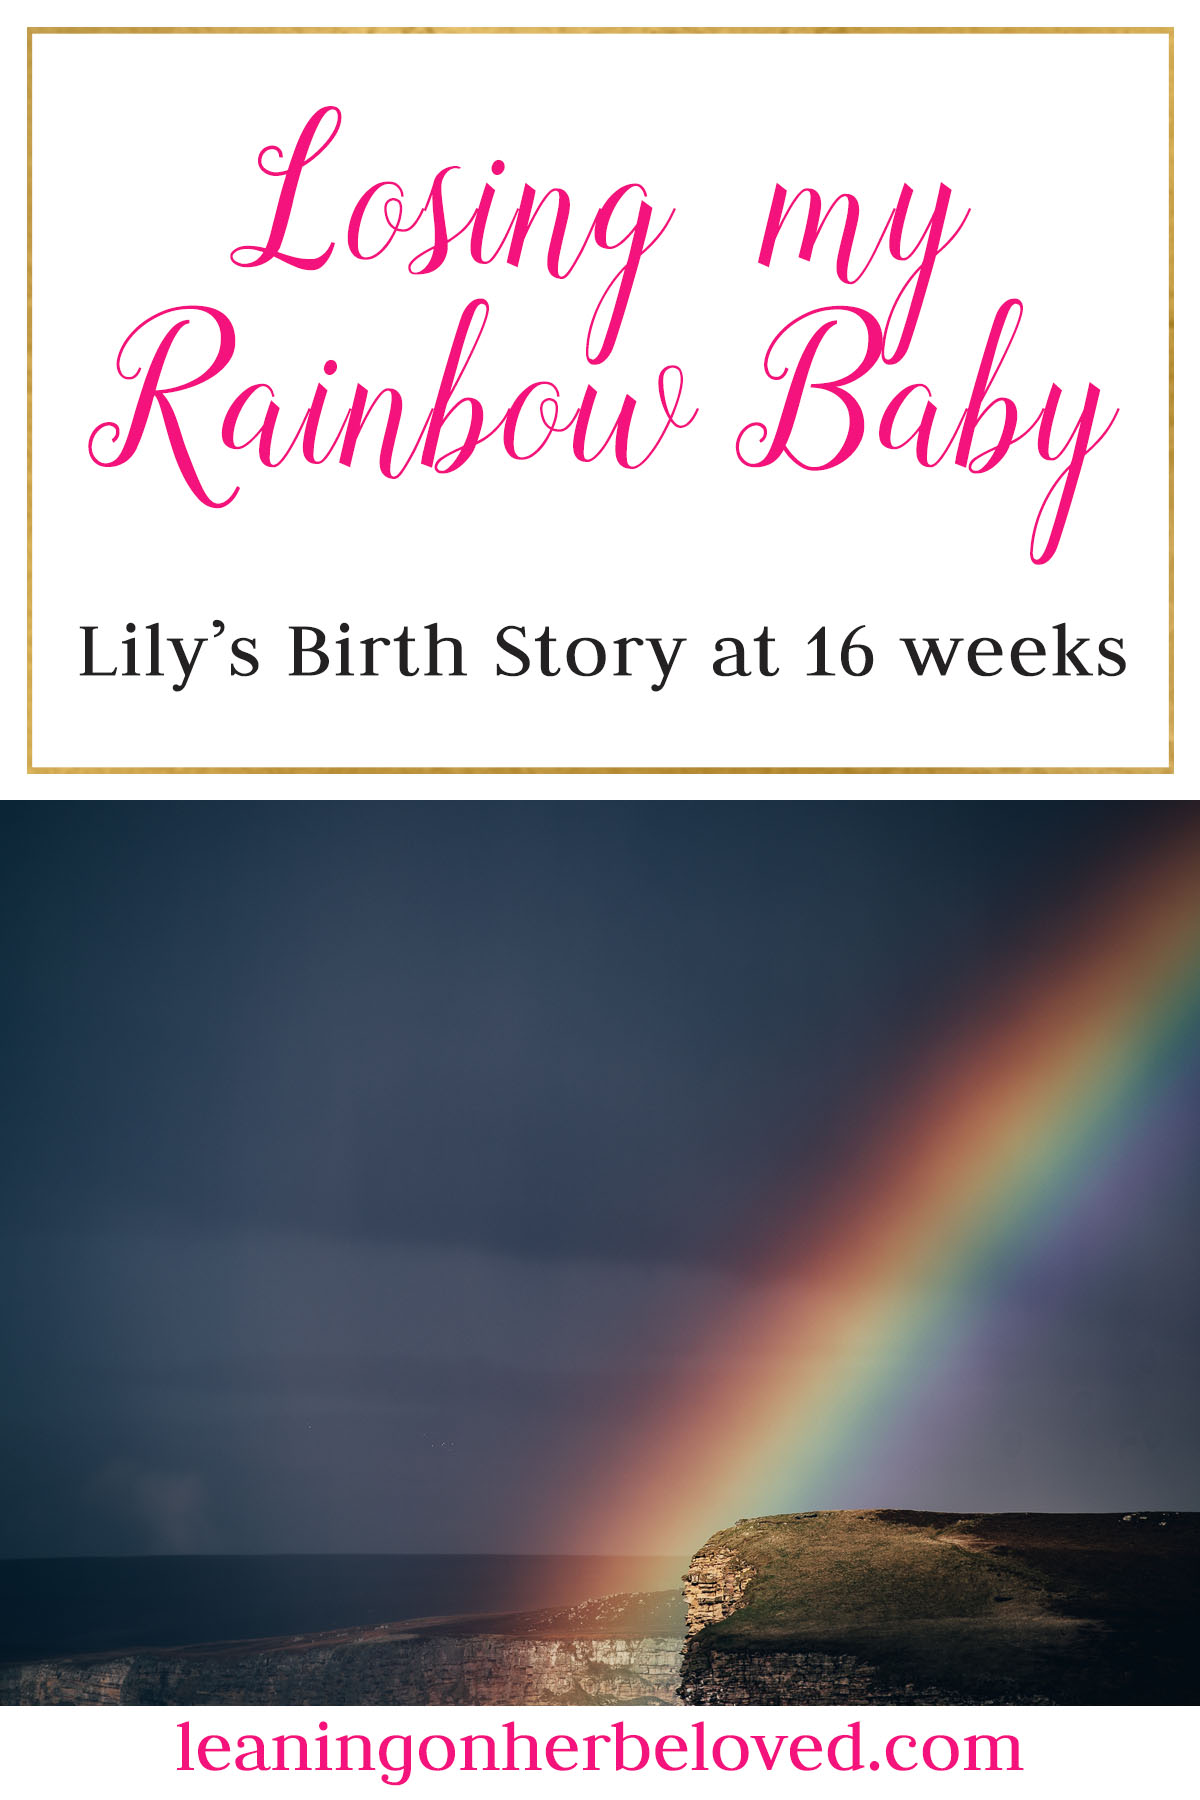 Losing our Rainbow Baby at 16 weeks was devastating. Here is our story of choosing to heal. #miscarriage